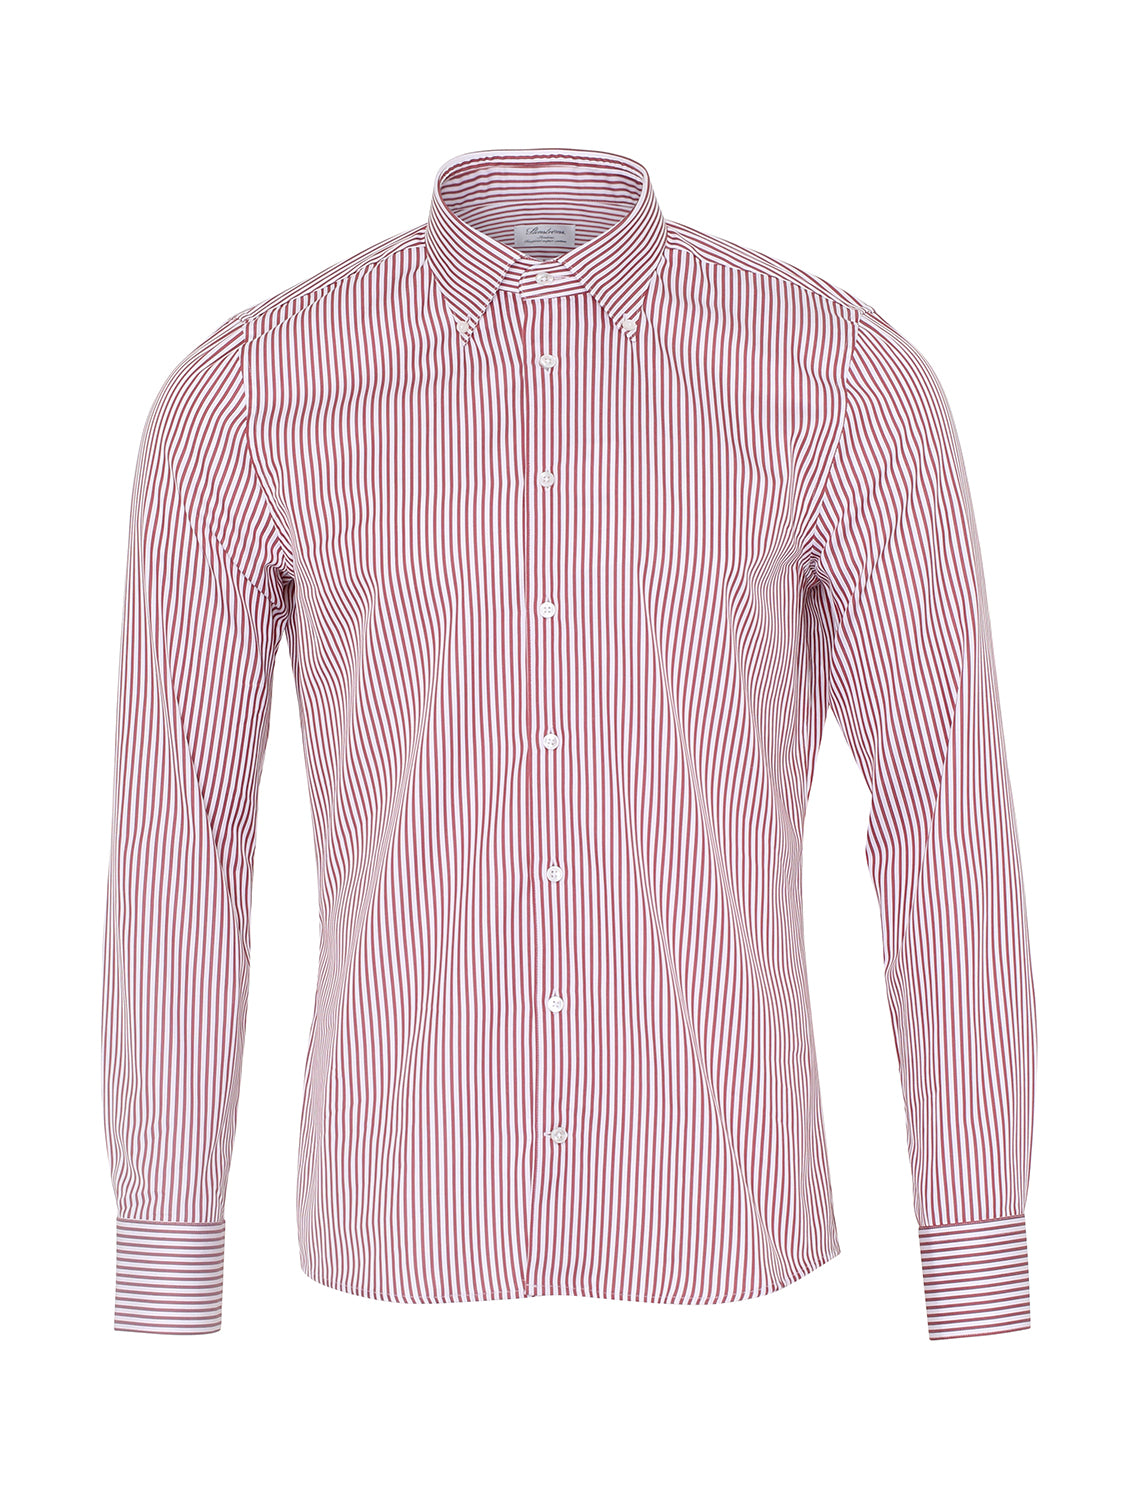 Stenstroms Buttoned Collar Shirt (Red) - Union 22